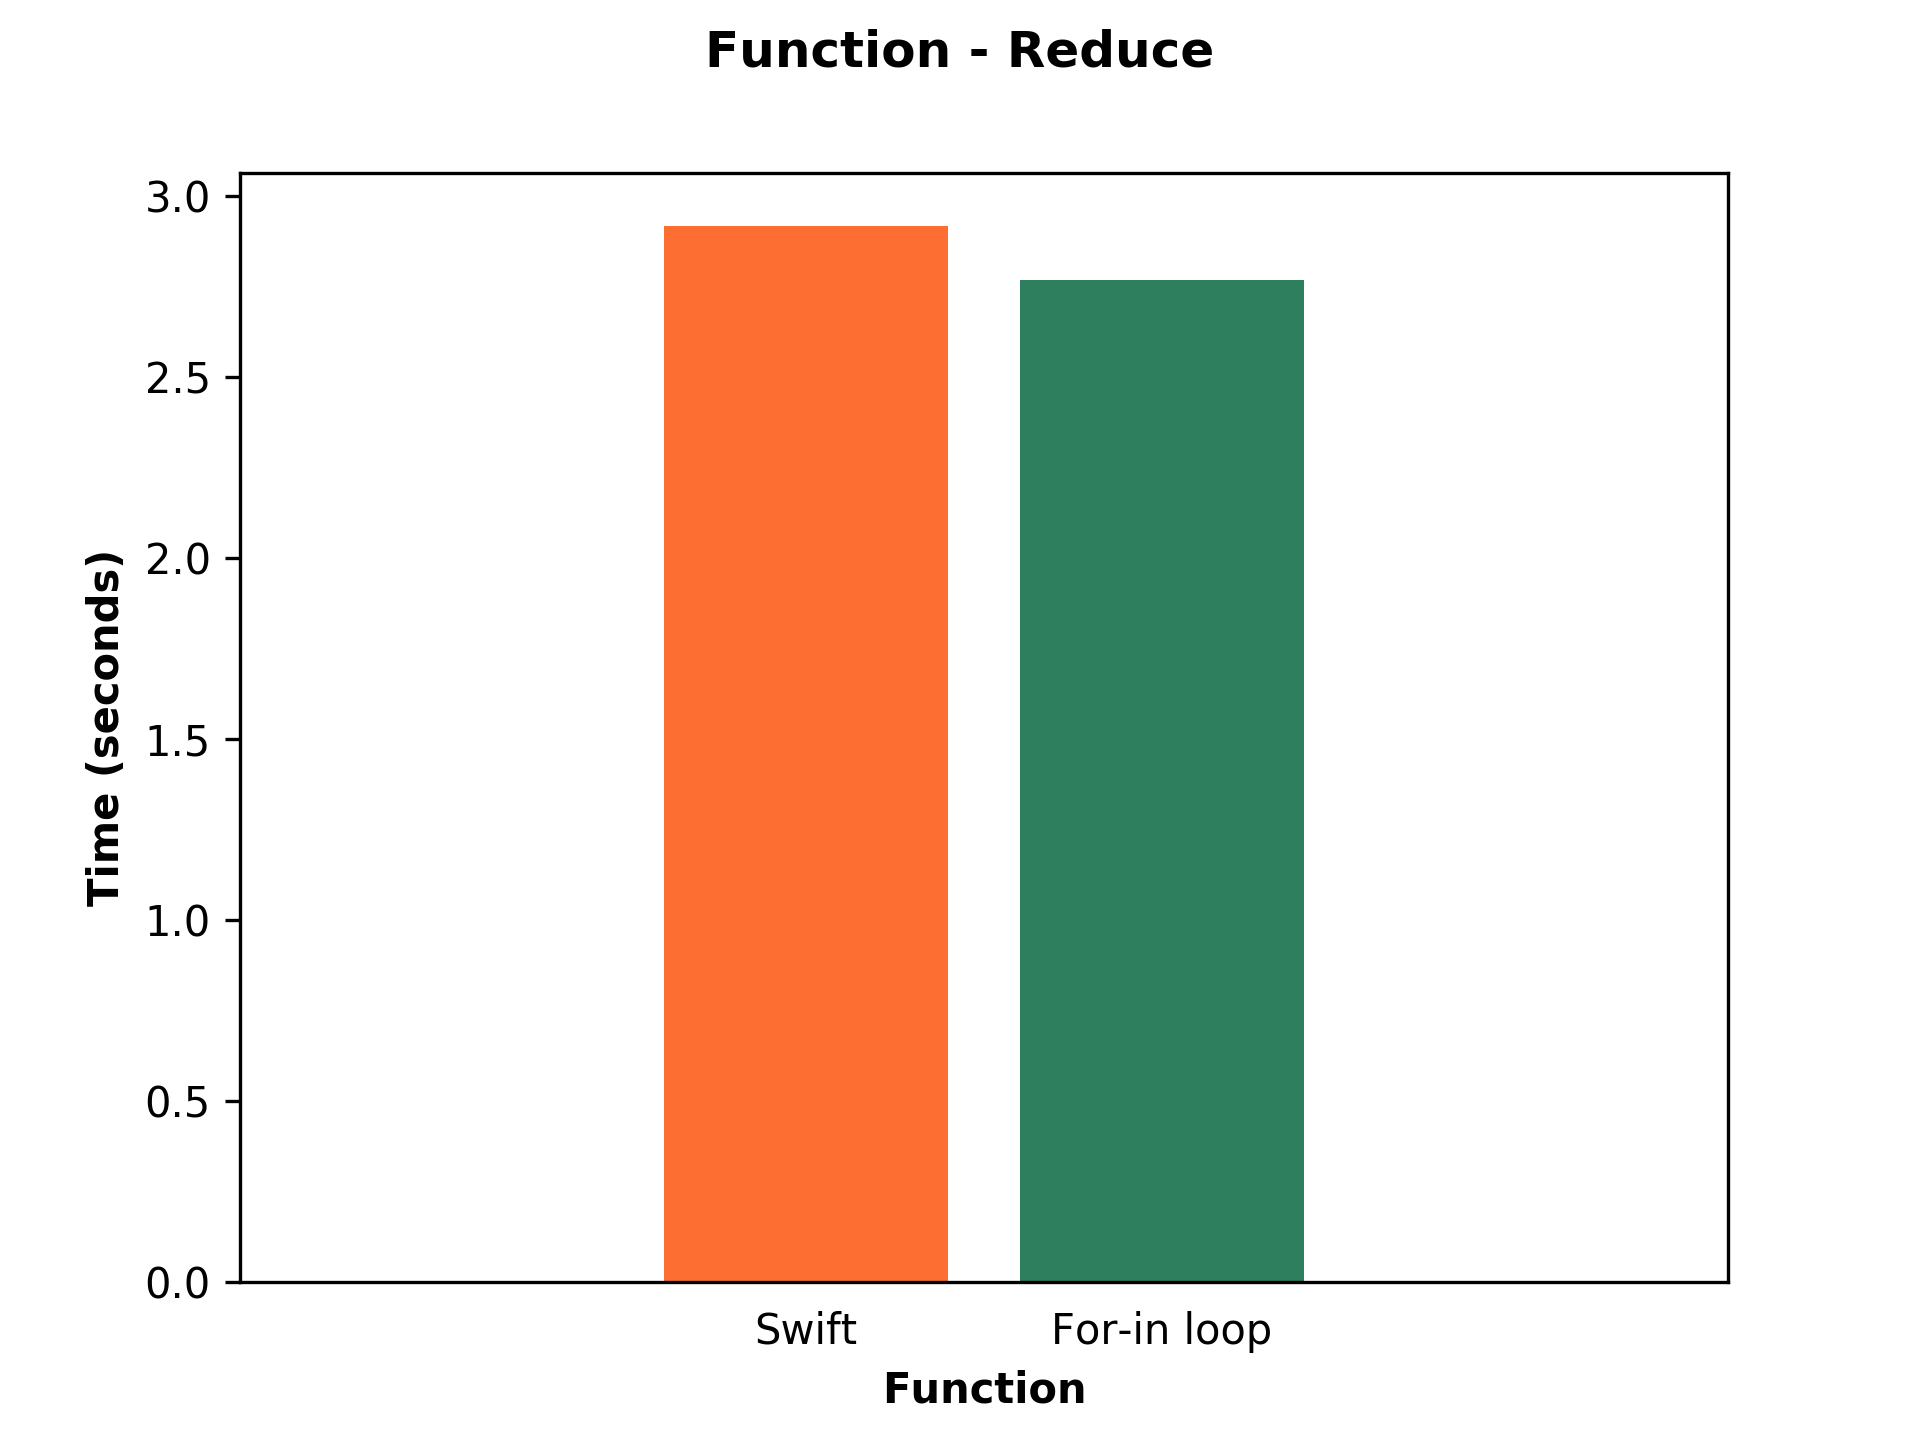 Bar chart shows performance of Swift and For-in loop of reduce function.